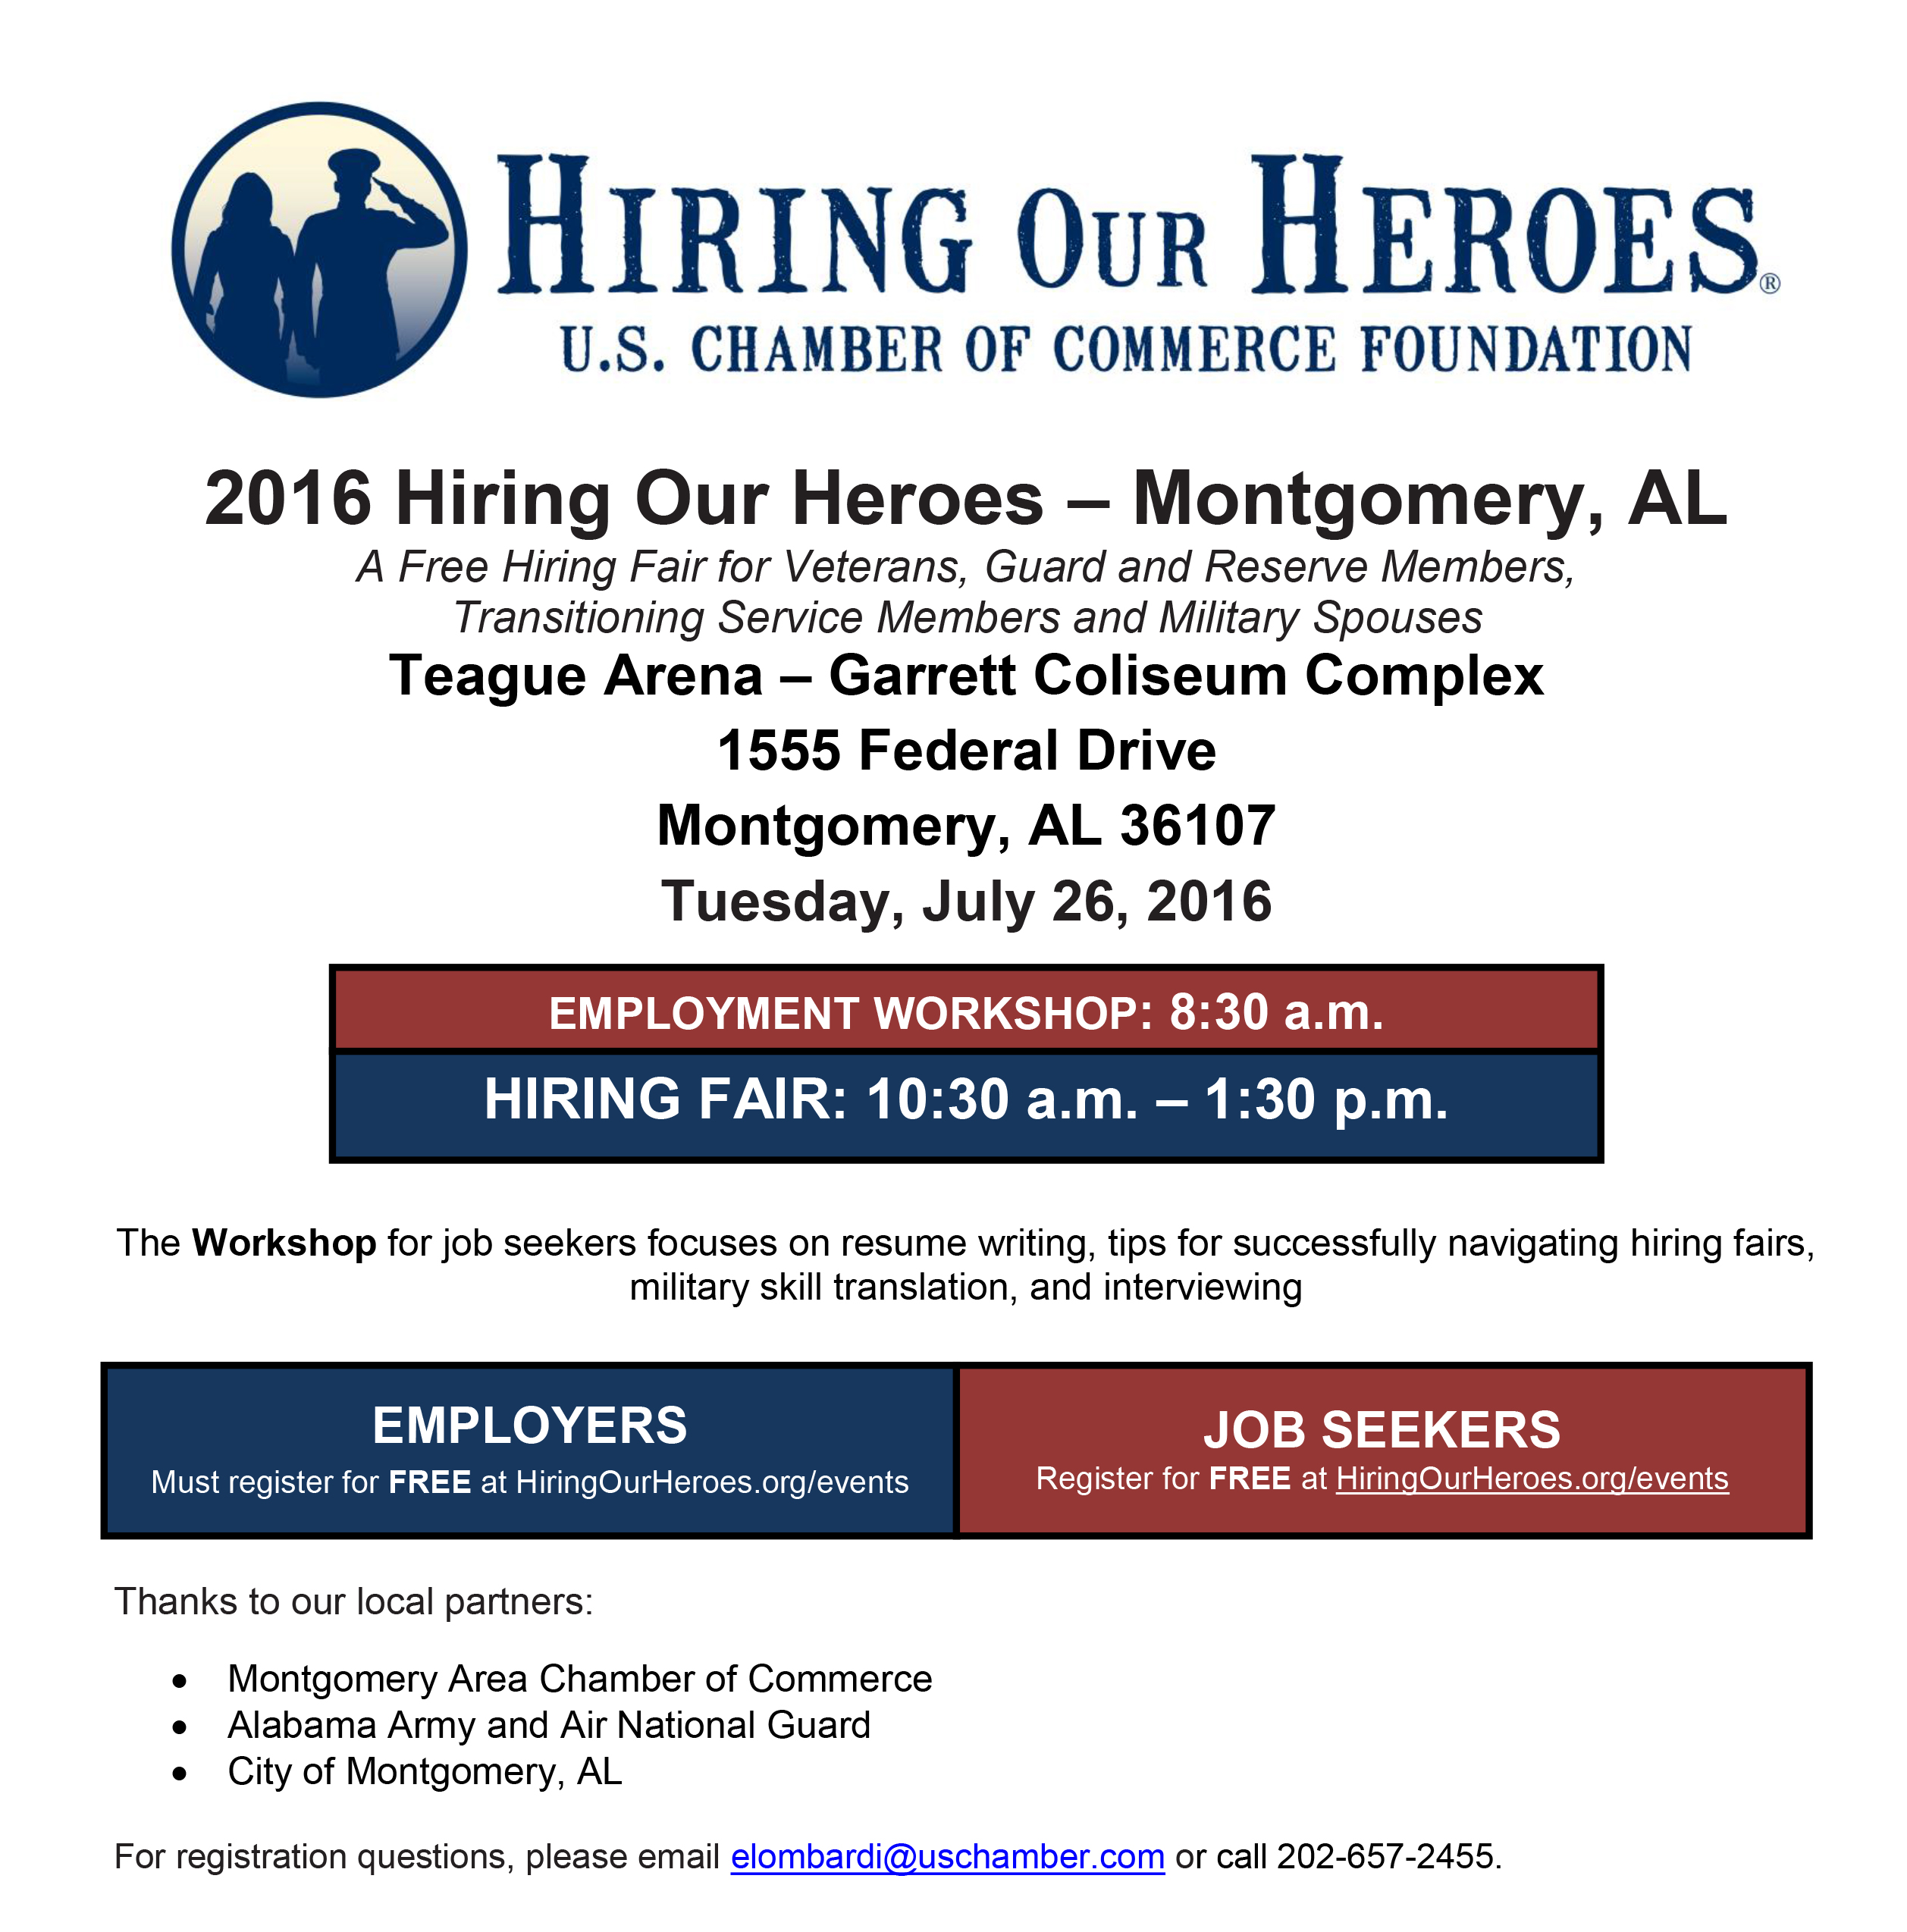 Hiring Our Heroes Job Fair Supports Veterans Service Members